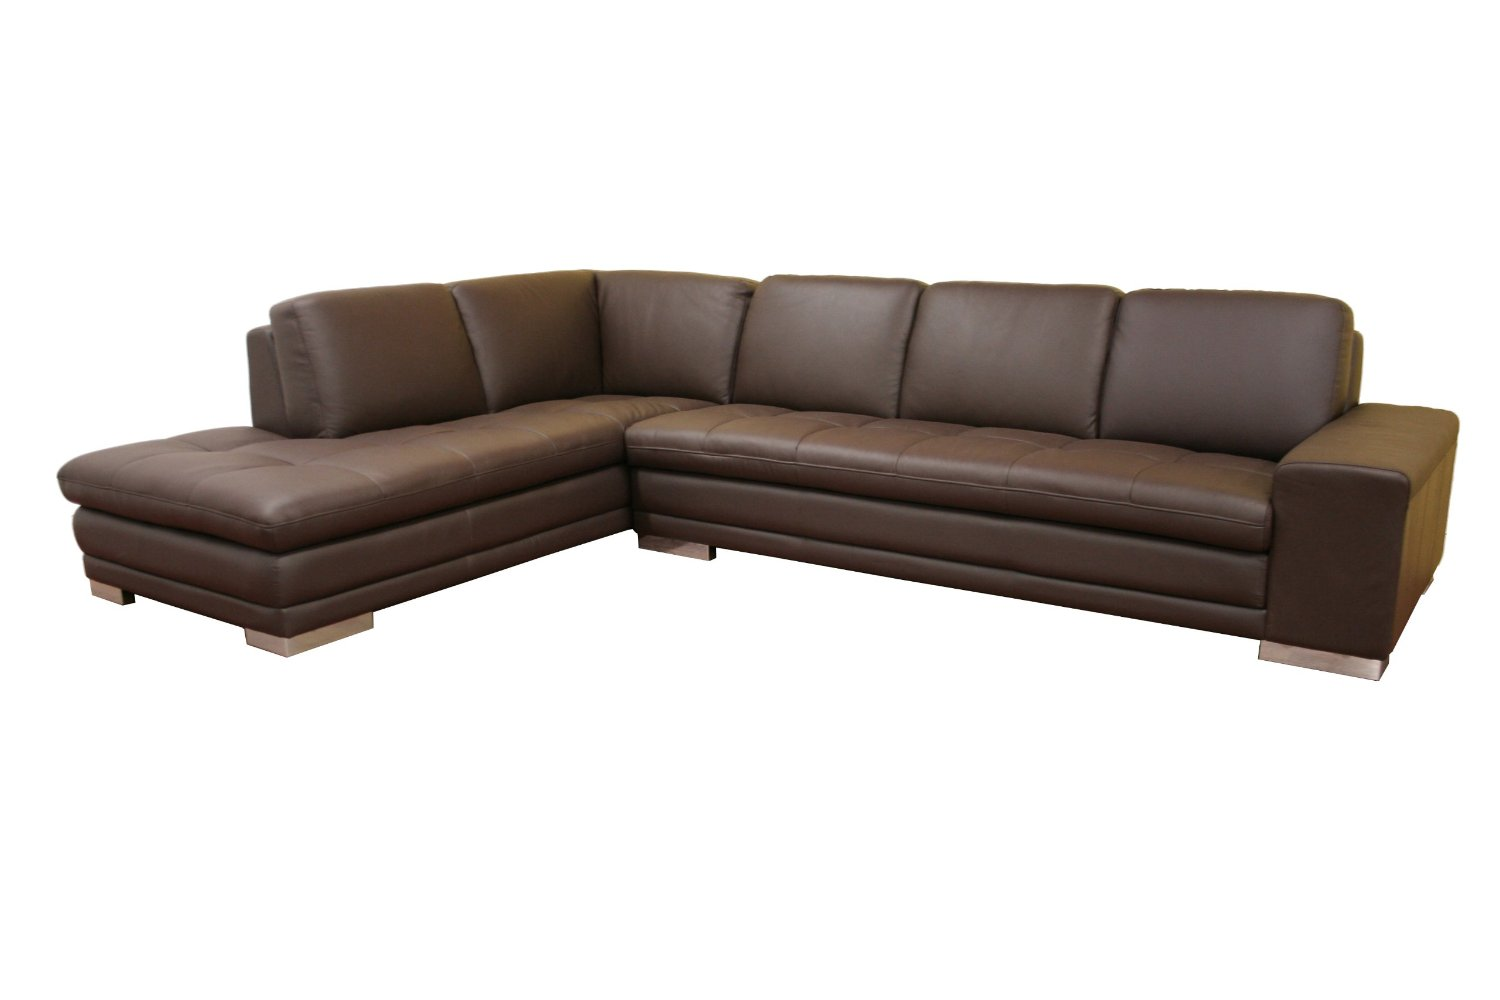 Sofa Leather Sectional Furniture Guide Leather Sofa Org